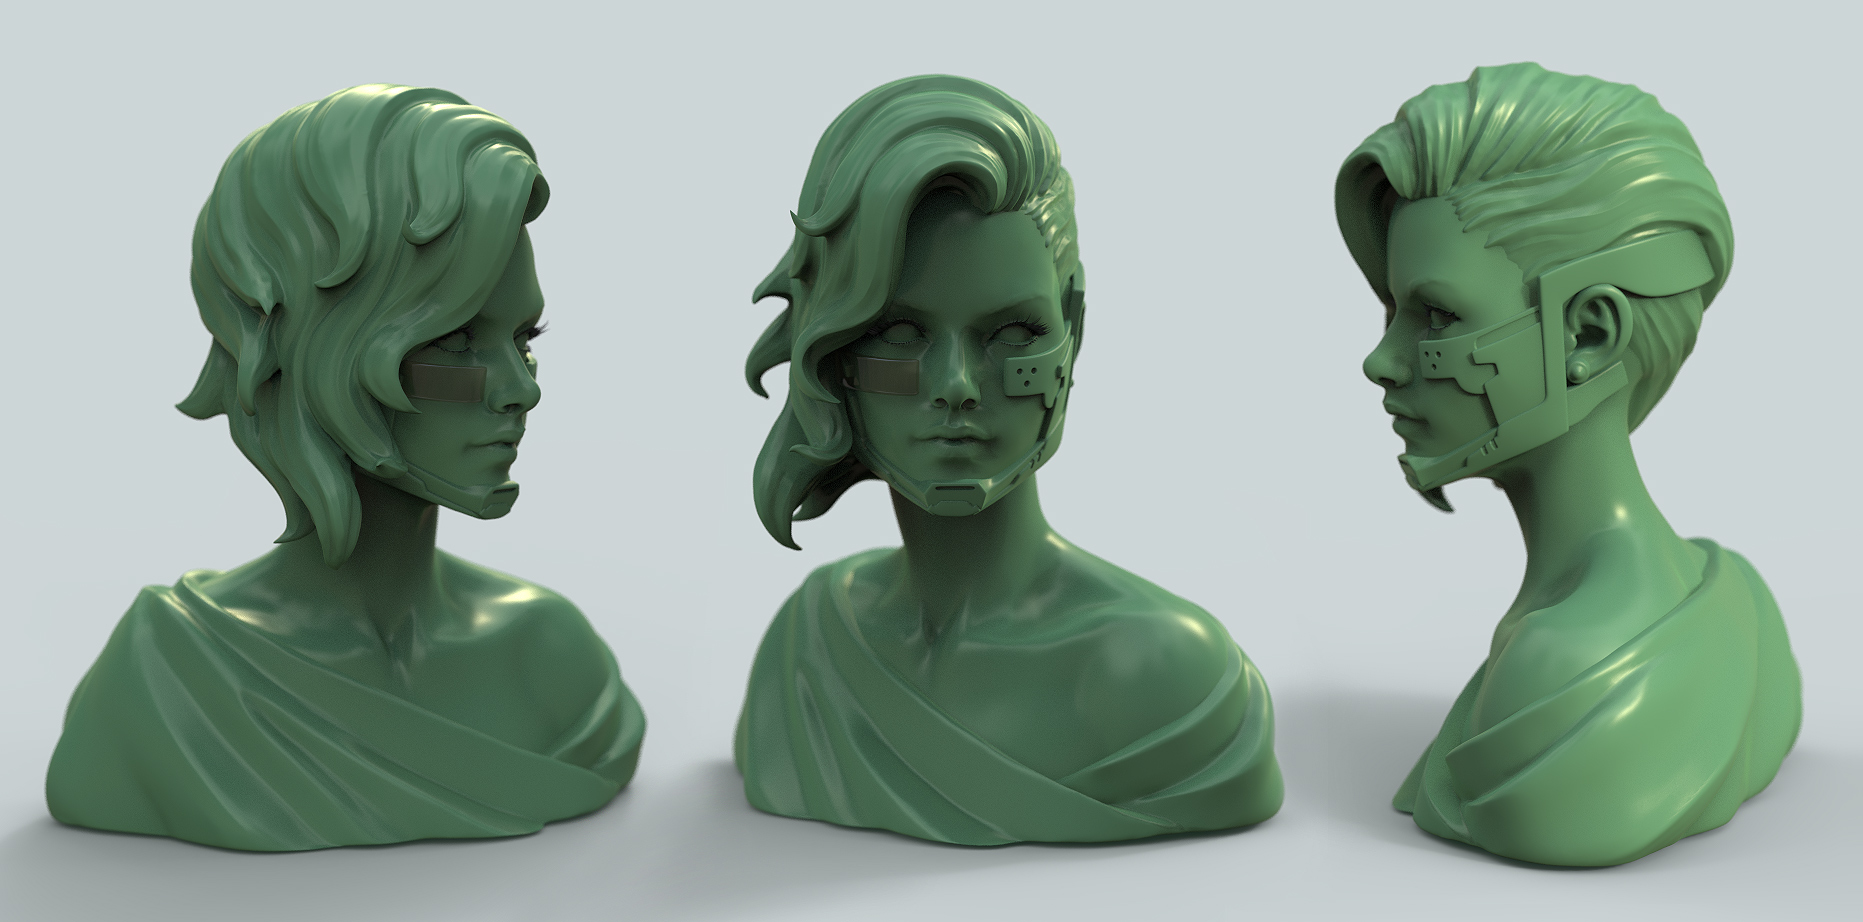 tribute_to_danny_luvisi_and_lms___green_clay_bust_by_hazardousarts-d5zf7r7.jpg